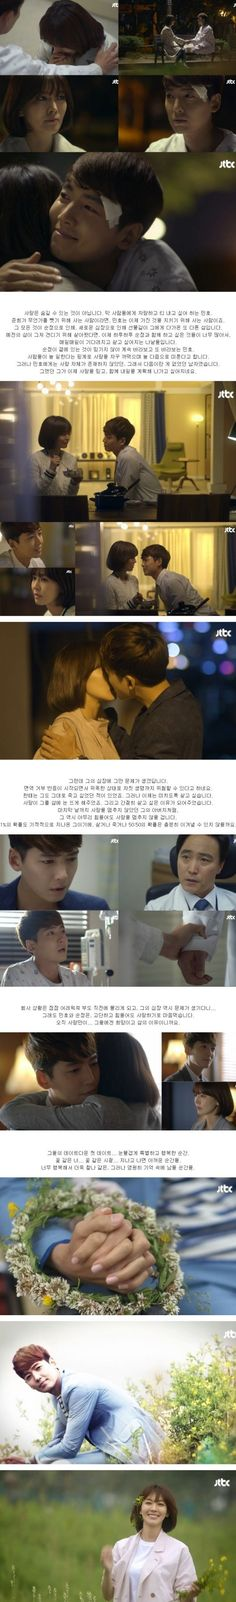 [Spoiler] Added final episodes 15 and 16 captures for the Korean drama 'Falling For Innocence' @ HanCinema :: The Korean Movie and Drama Database